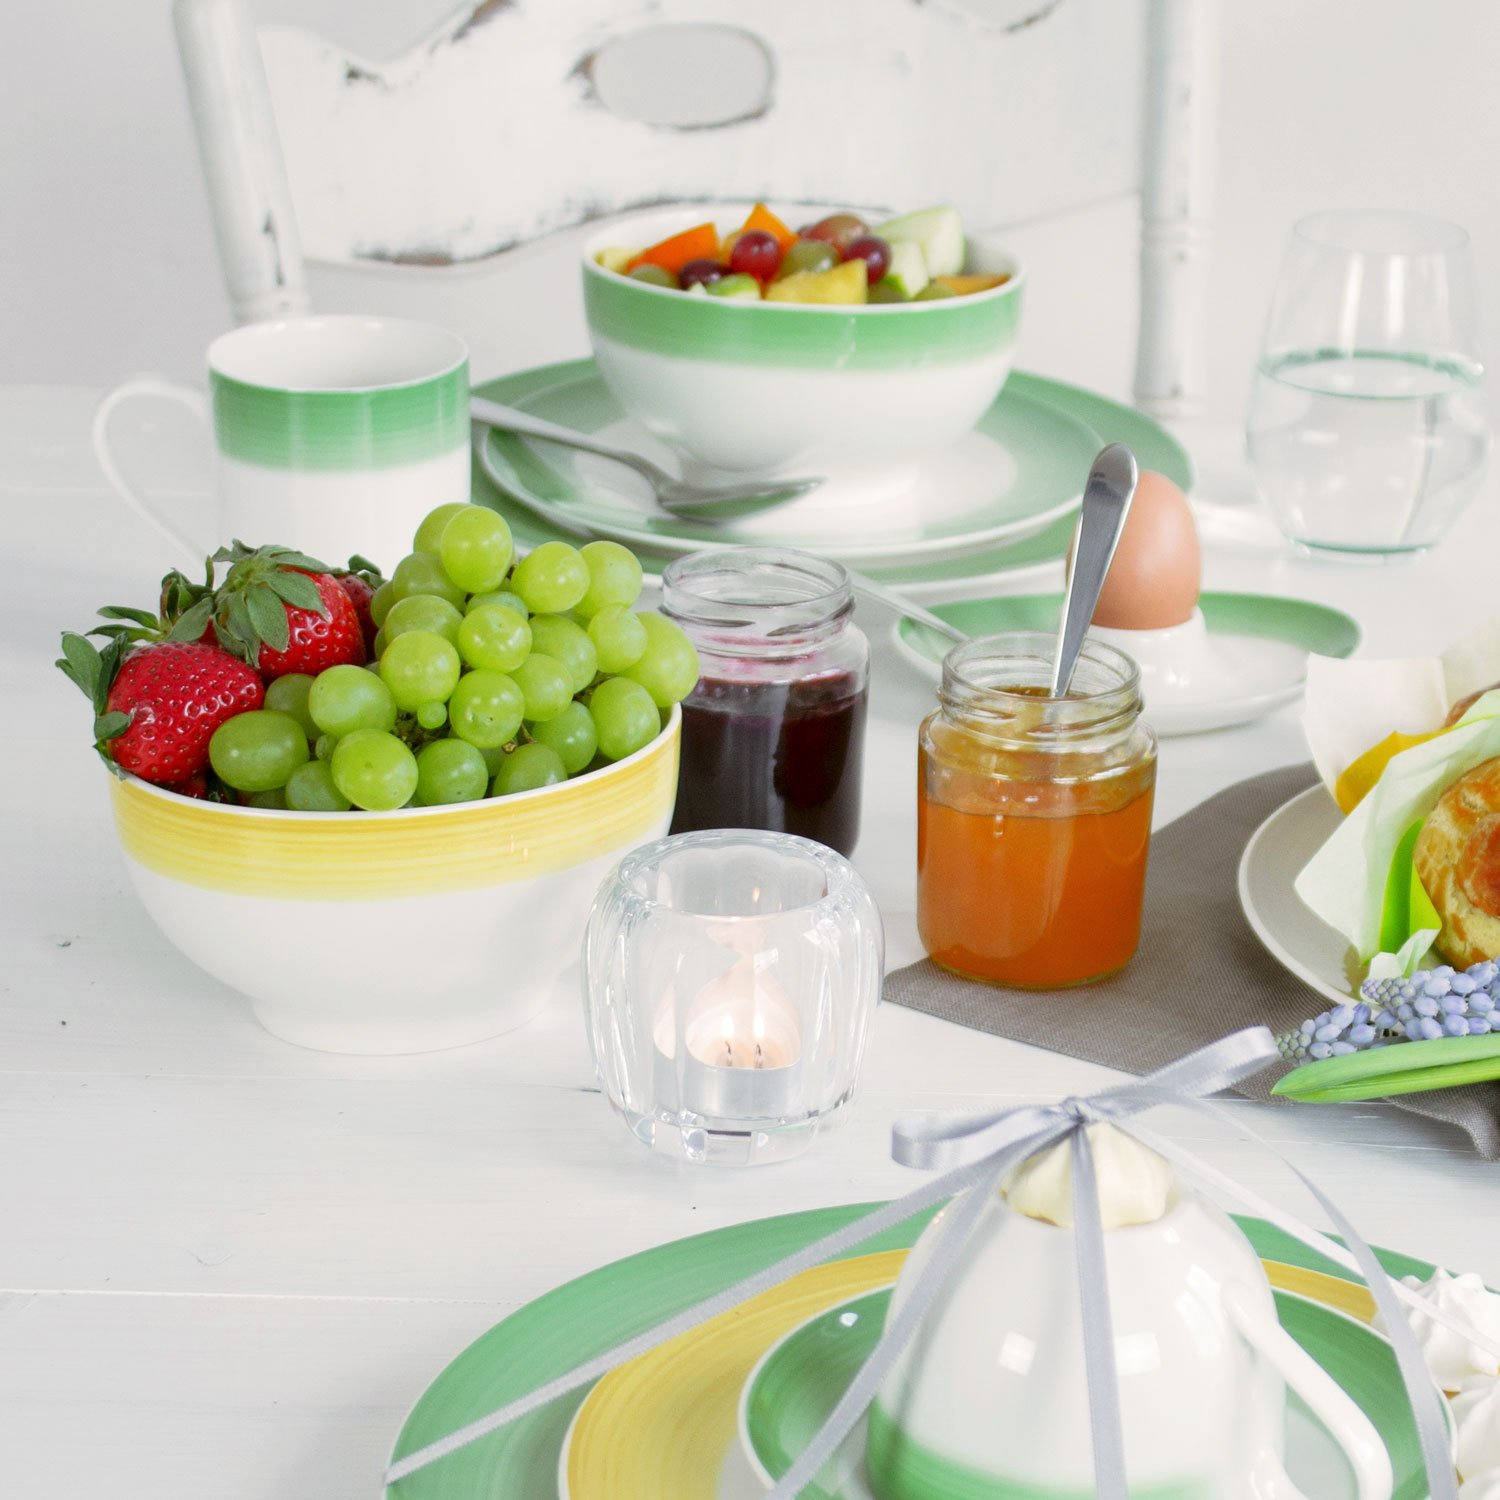 White//Grey Villeroy /& Boch Colourful Life Cosy Grey French Bowl Premium Porcelain